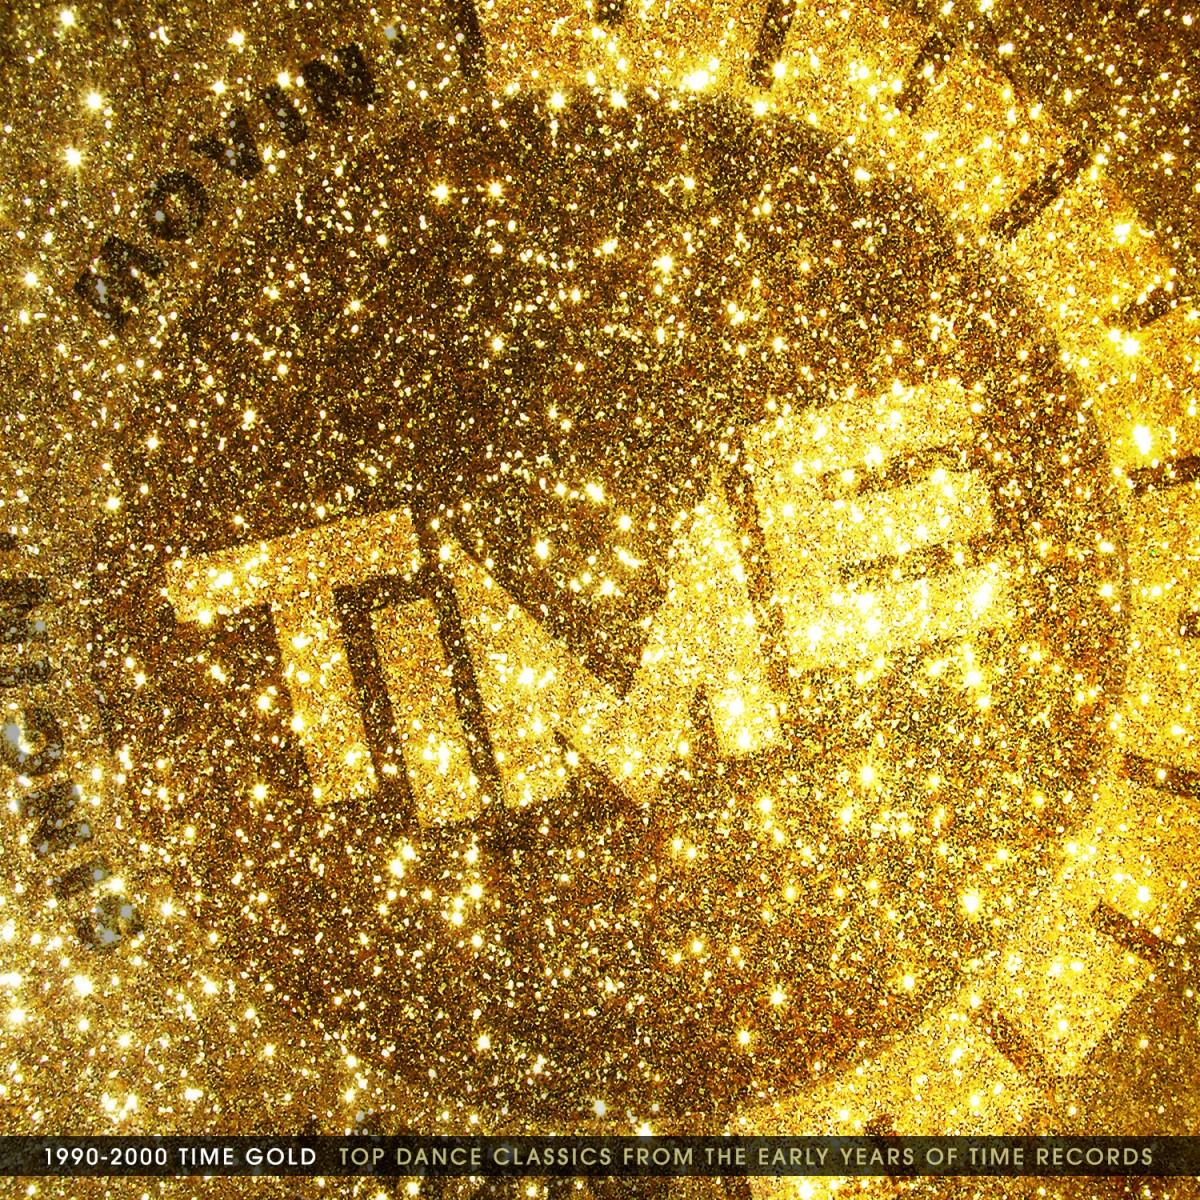 TIME GOLD 1990-2000